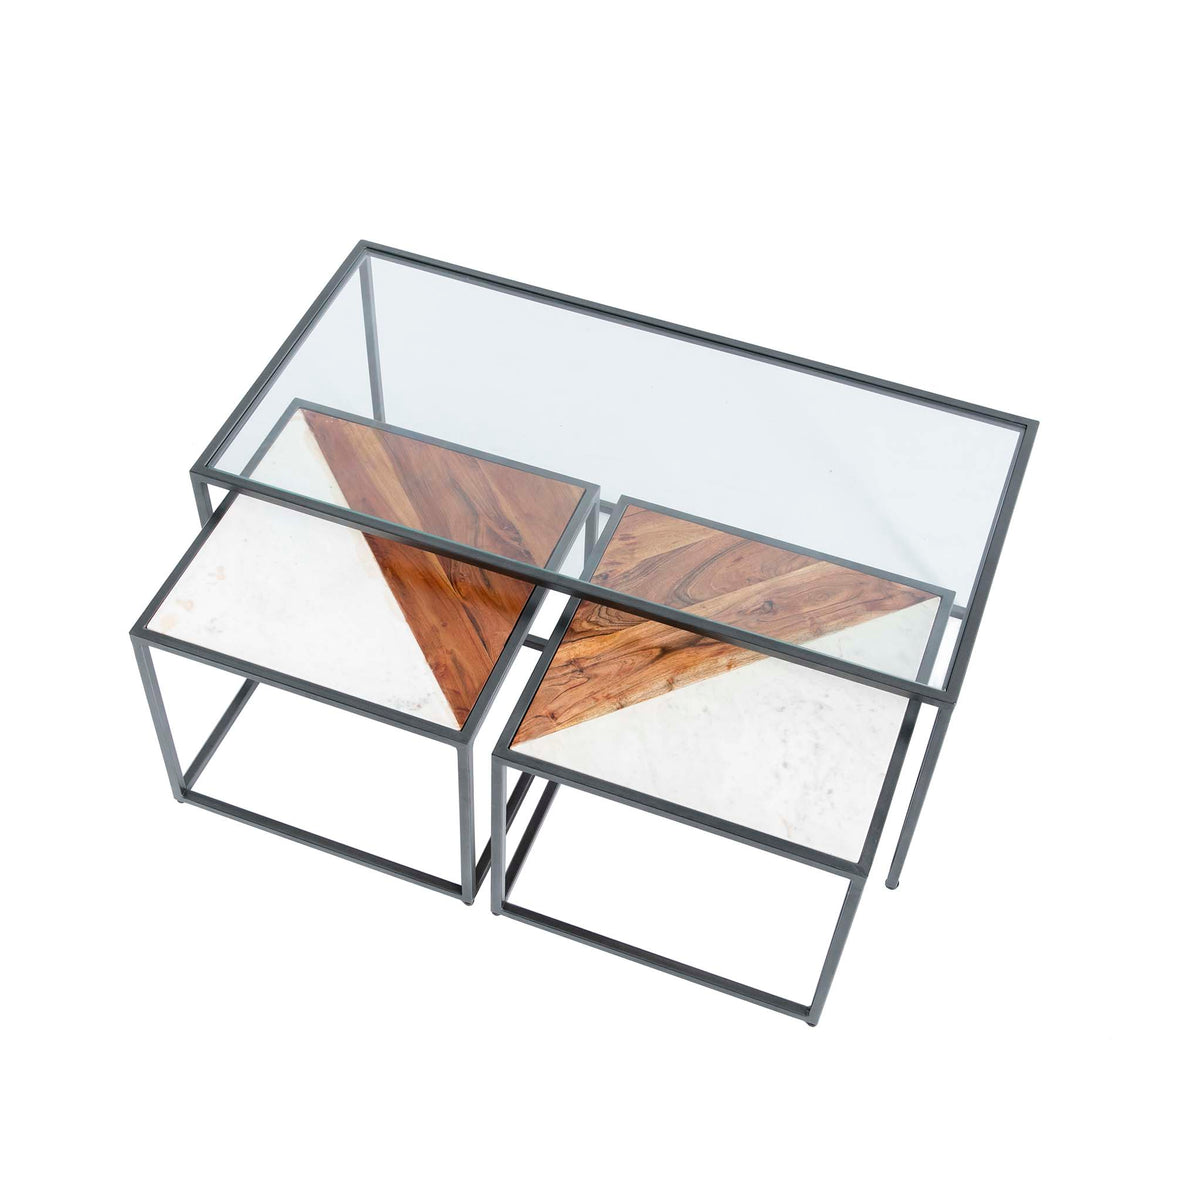 Kandla Glass Topped Coffee Table with White Marble & Wood Nested Tables and grey Bases - Birds eye view of tables